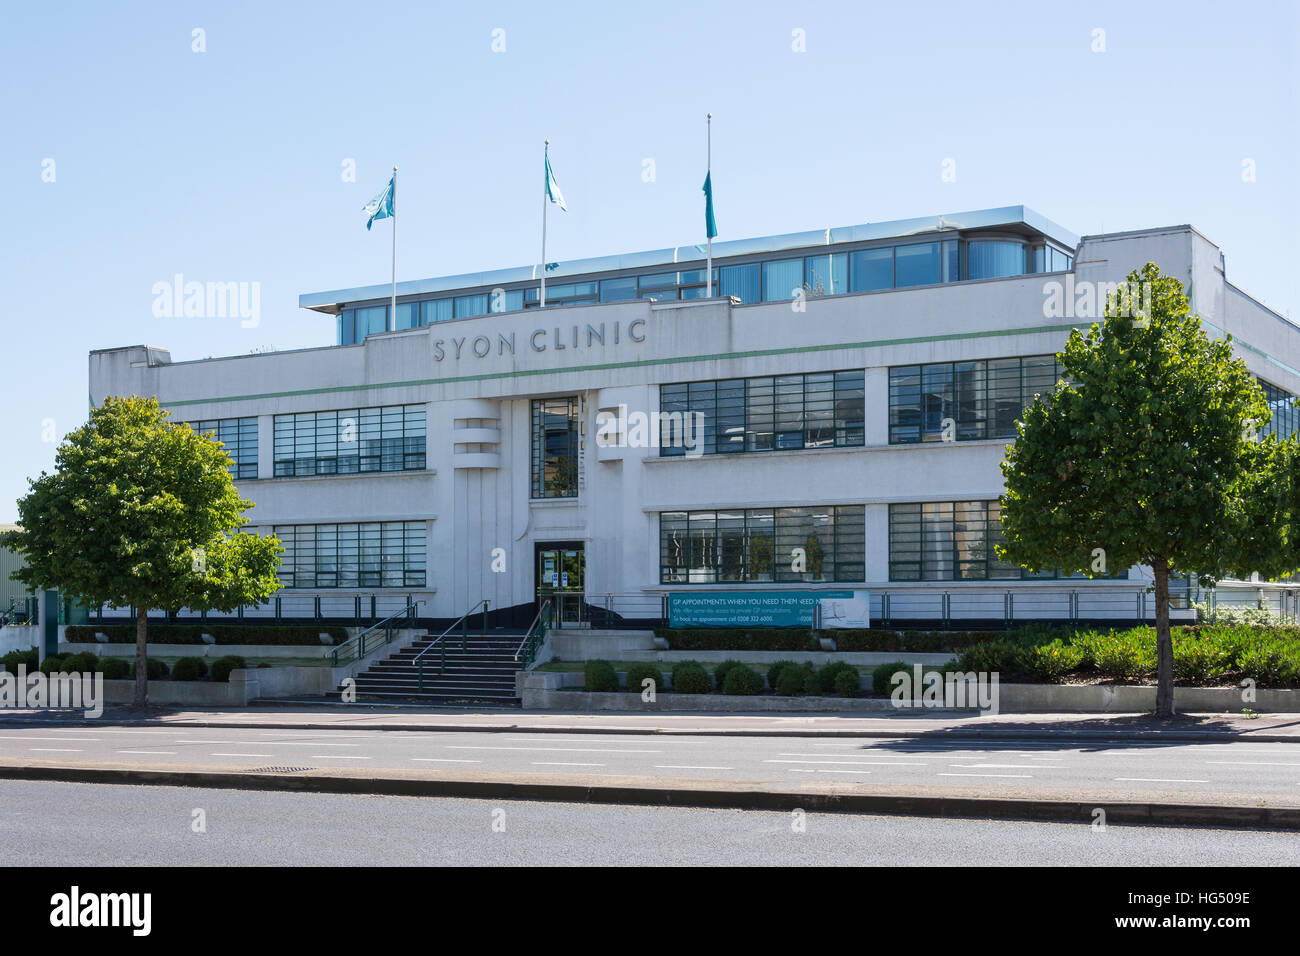 Art Deco Syon Clinic building, Great West Road, Brentford, London Borough of Hounslow, Greater London, England, - Stock Image